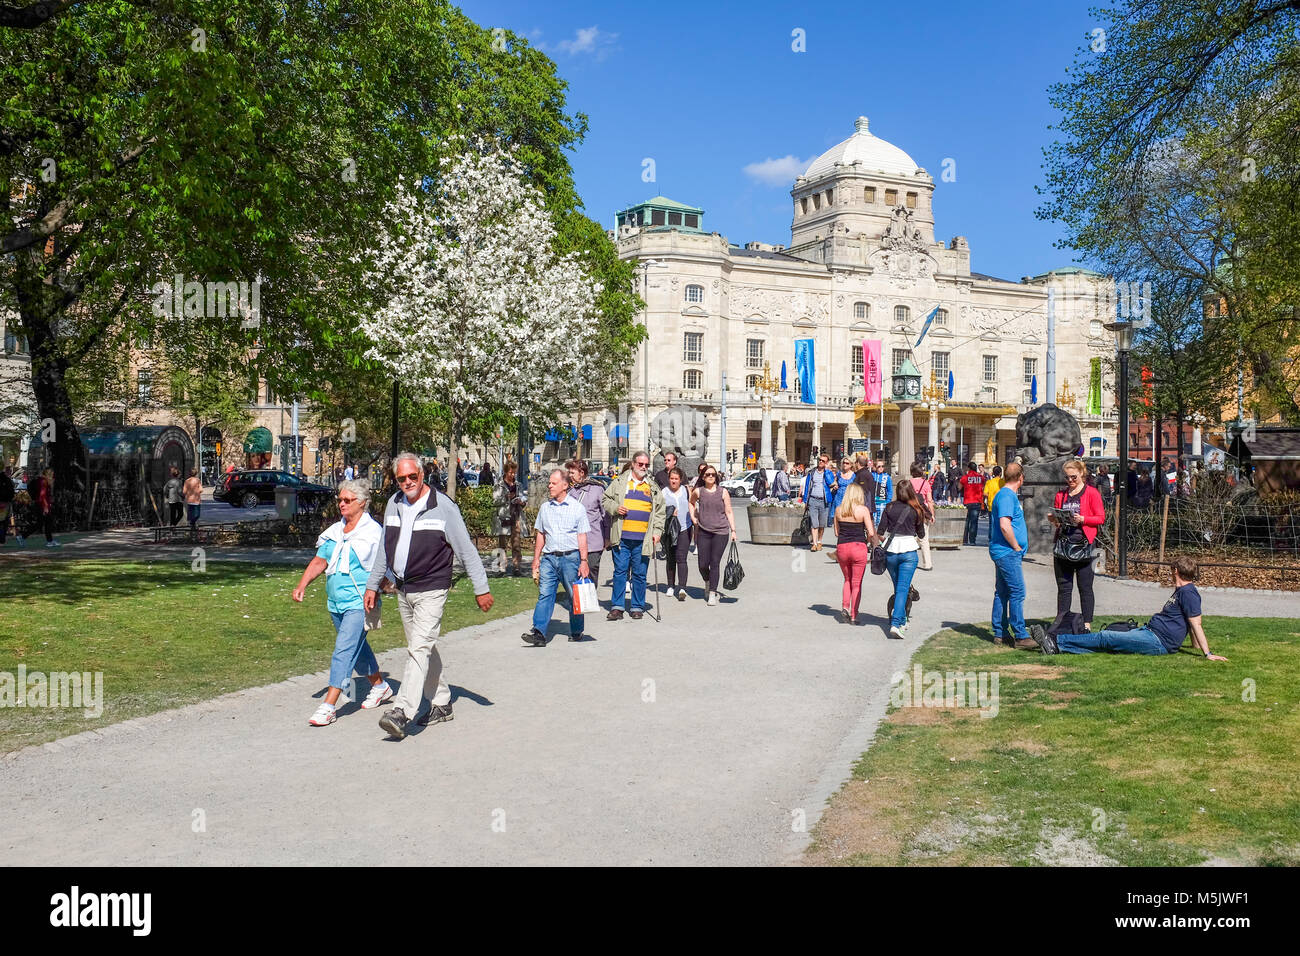 People stroll in Berzelii park during spring in Stockholm. The Royal Dramatic Theater in the background was built - Stock Image